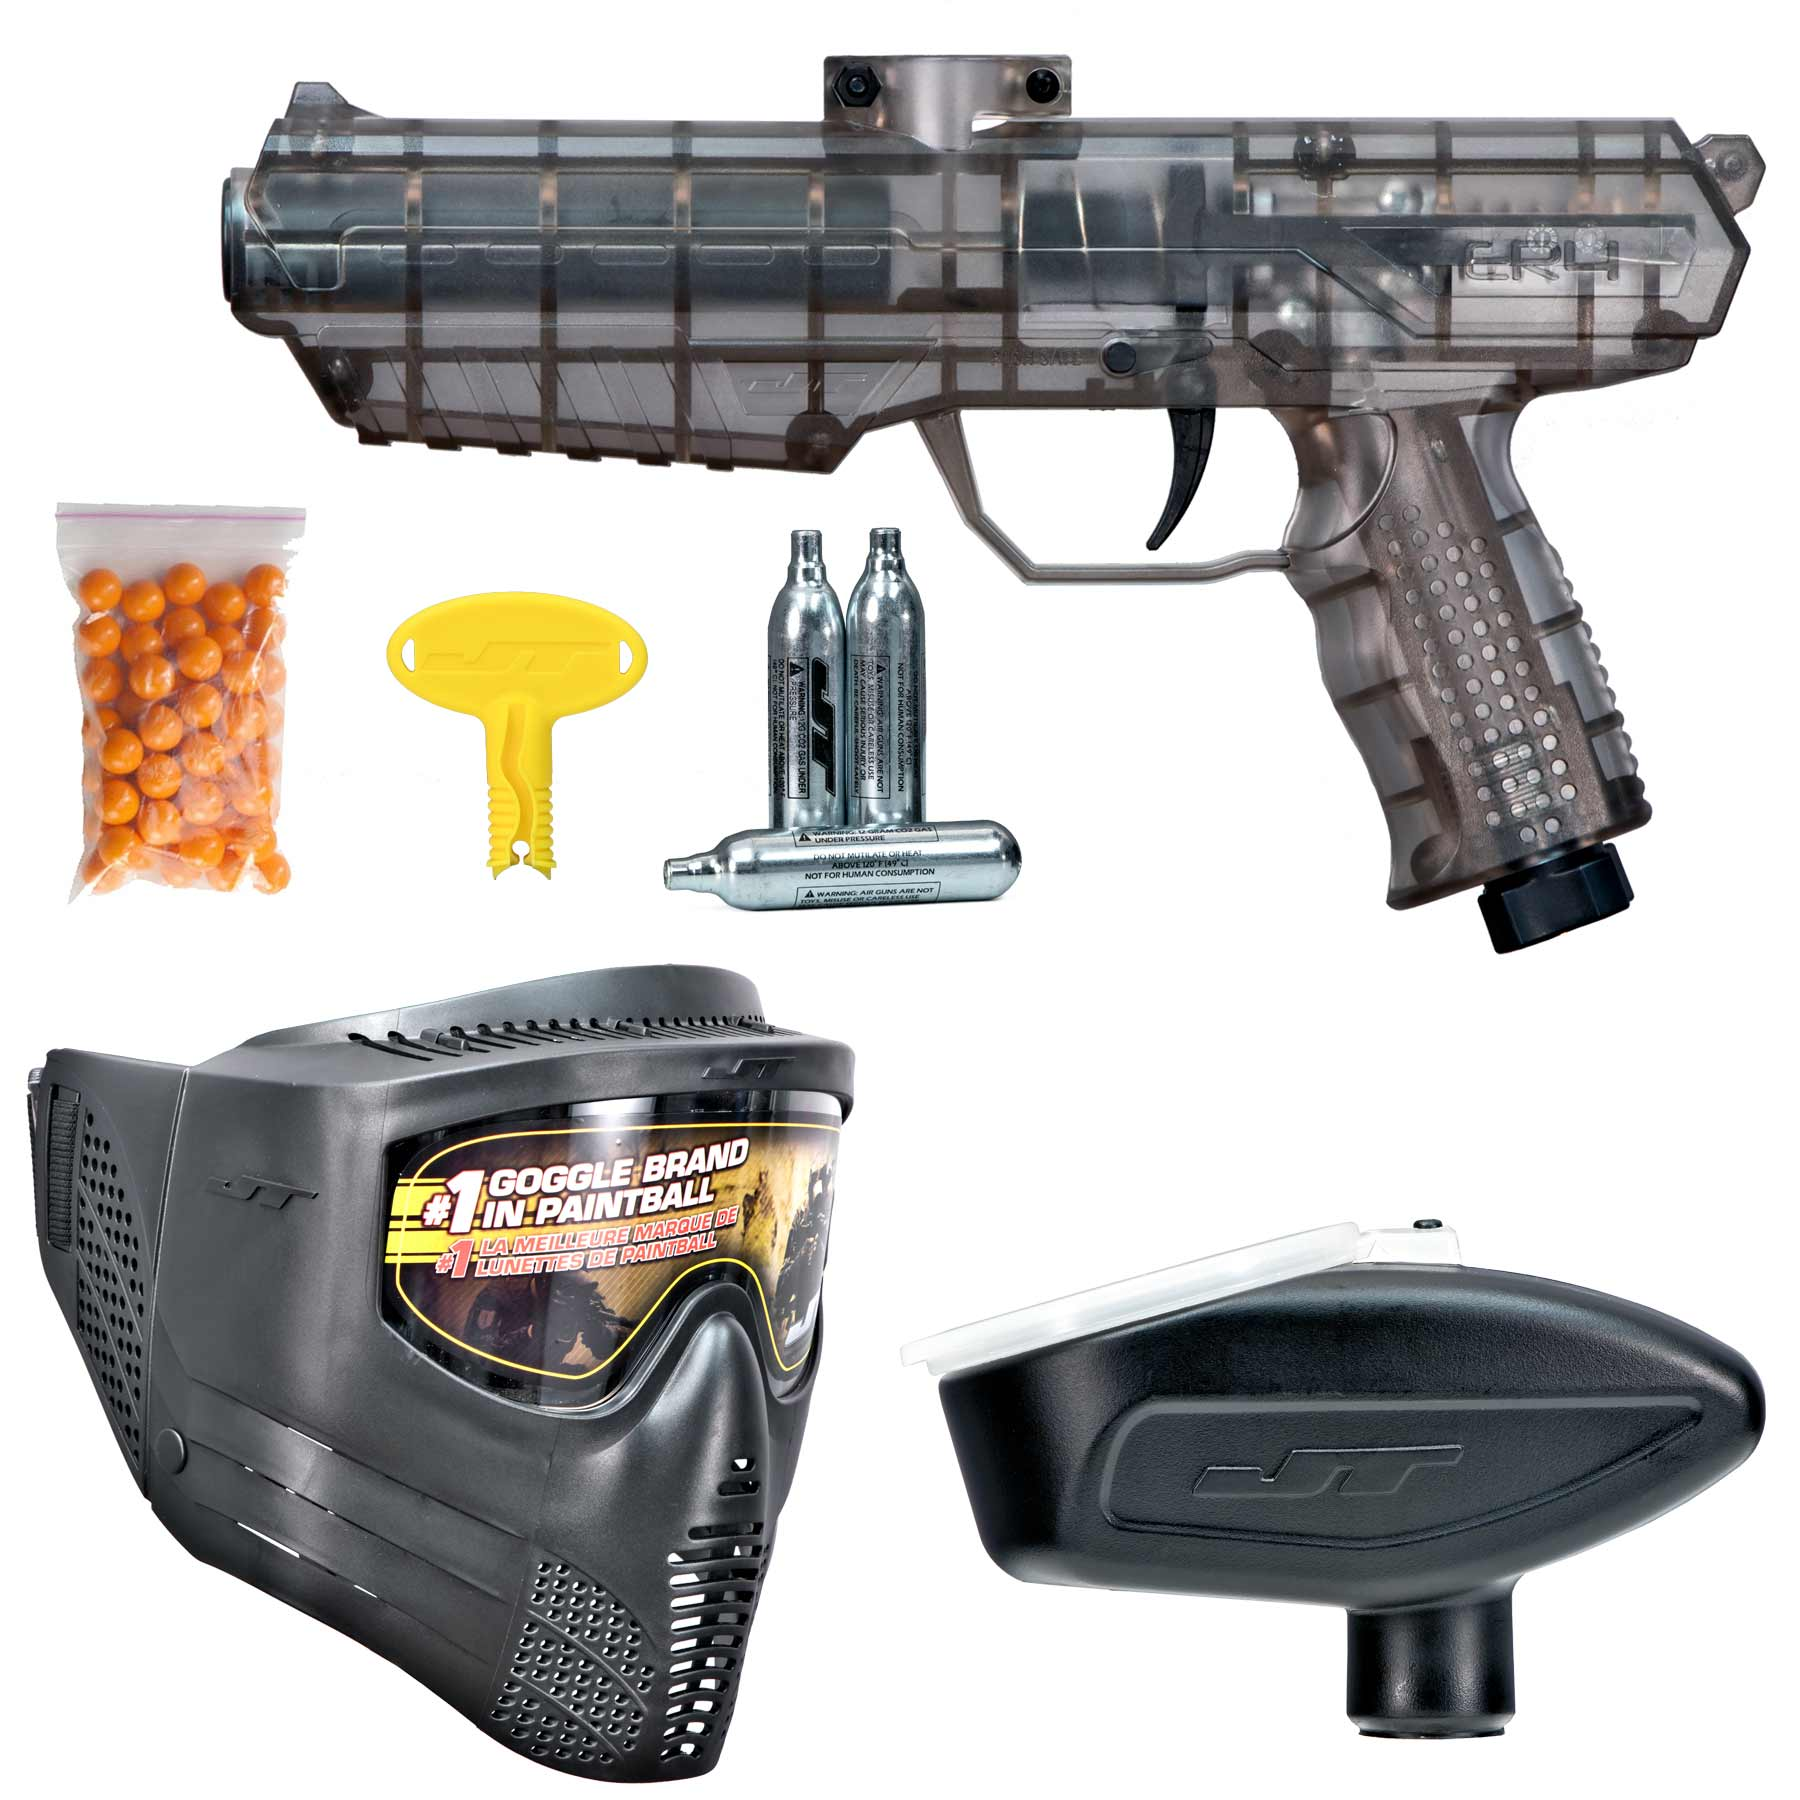 JT ER4 RTP .68 cal Paintball Kit w/ Goggle, Co2, Hopper, & Paintballs